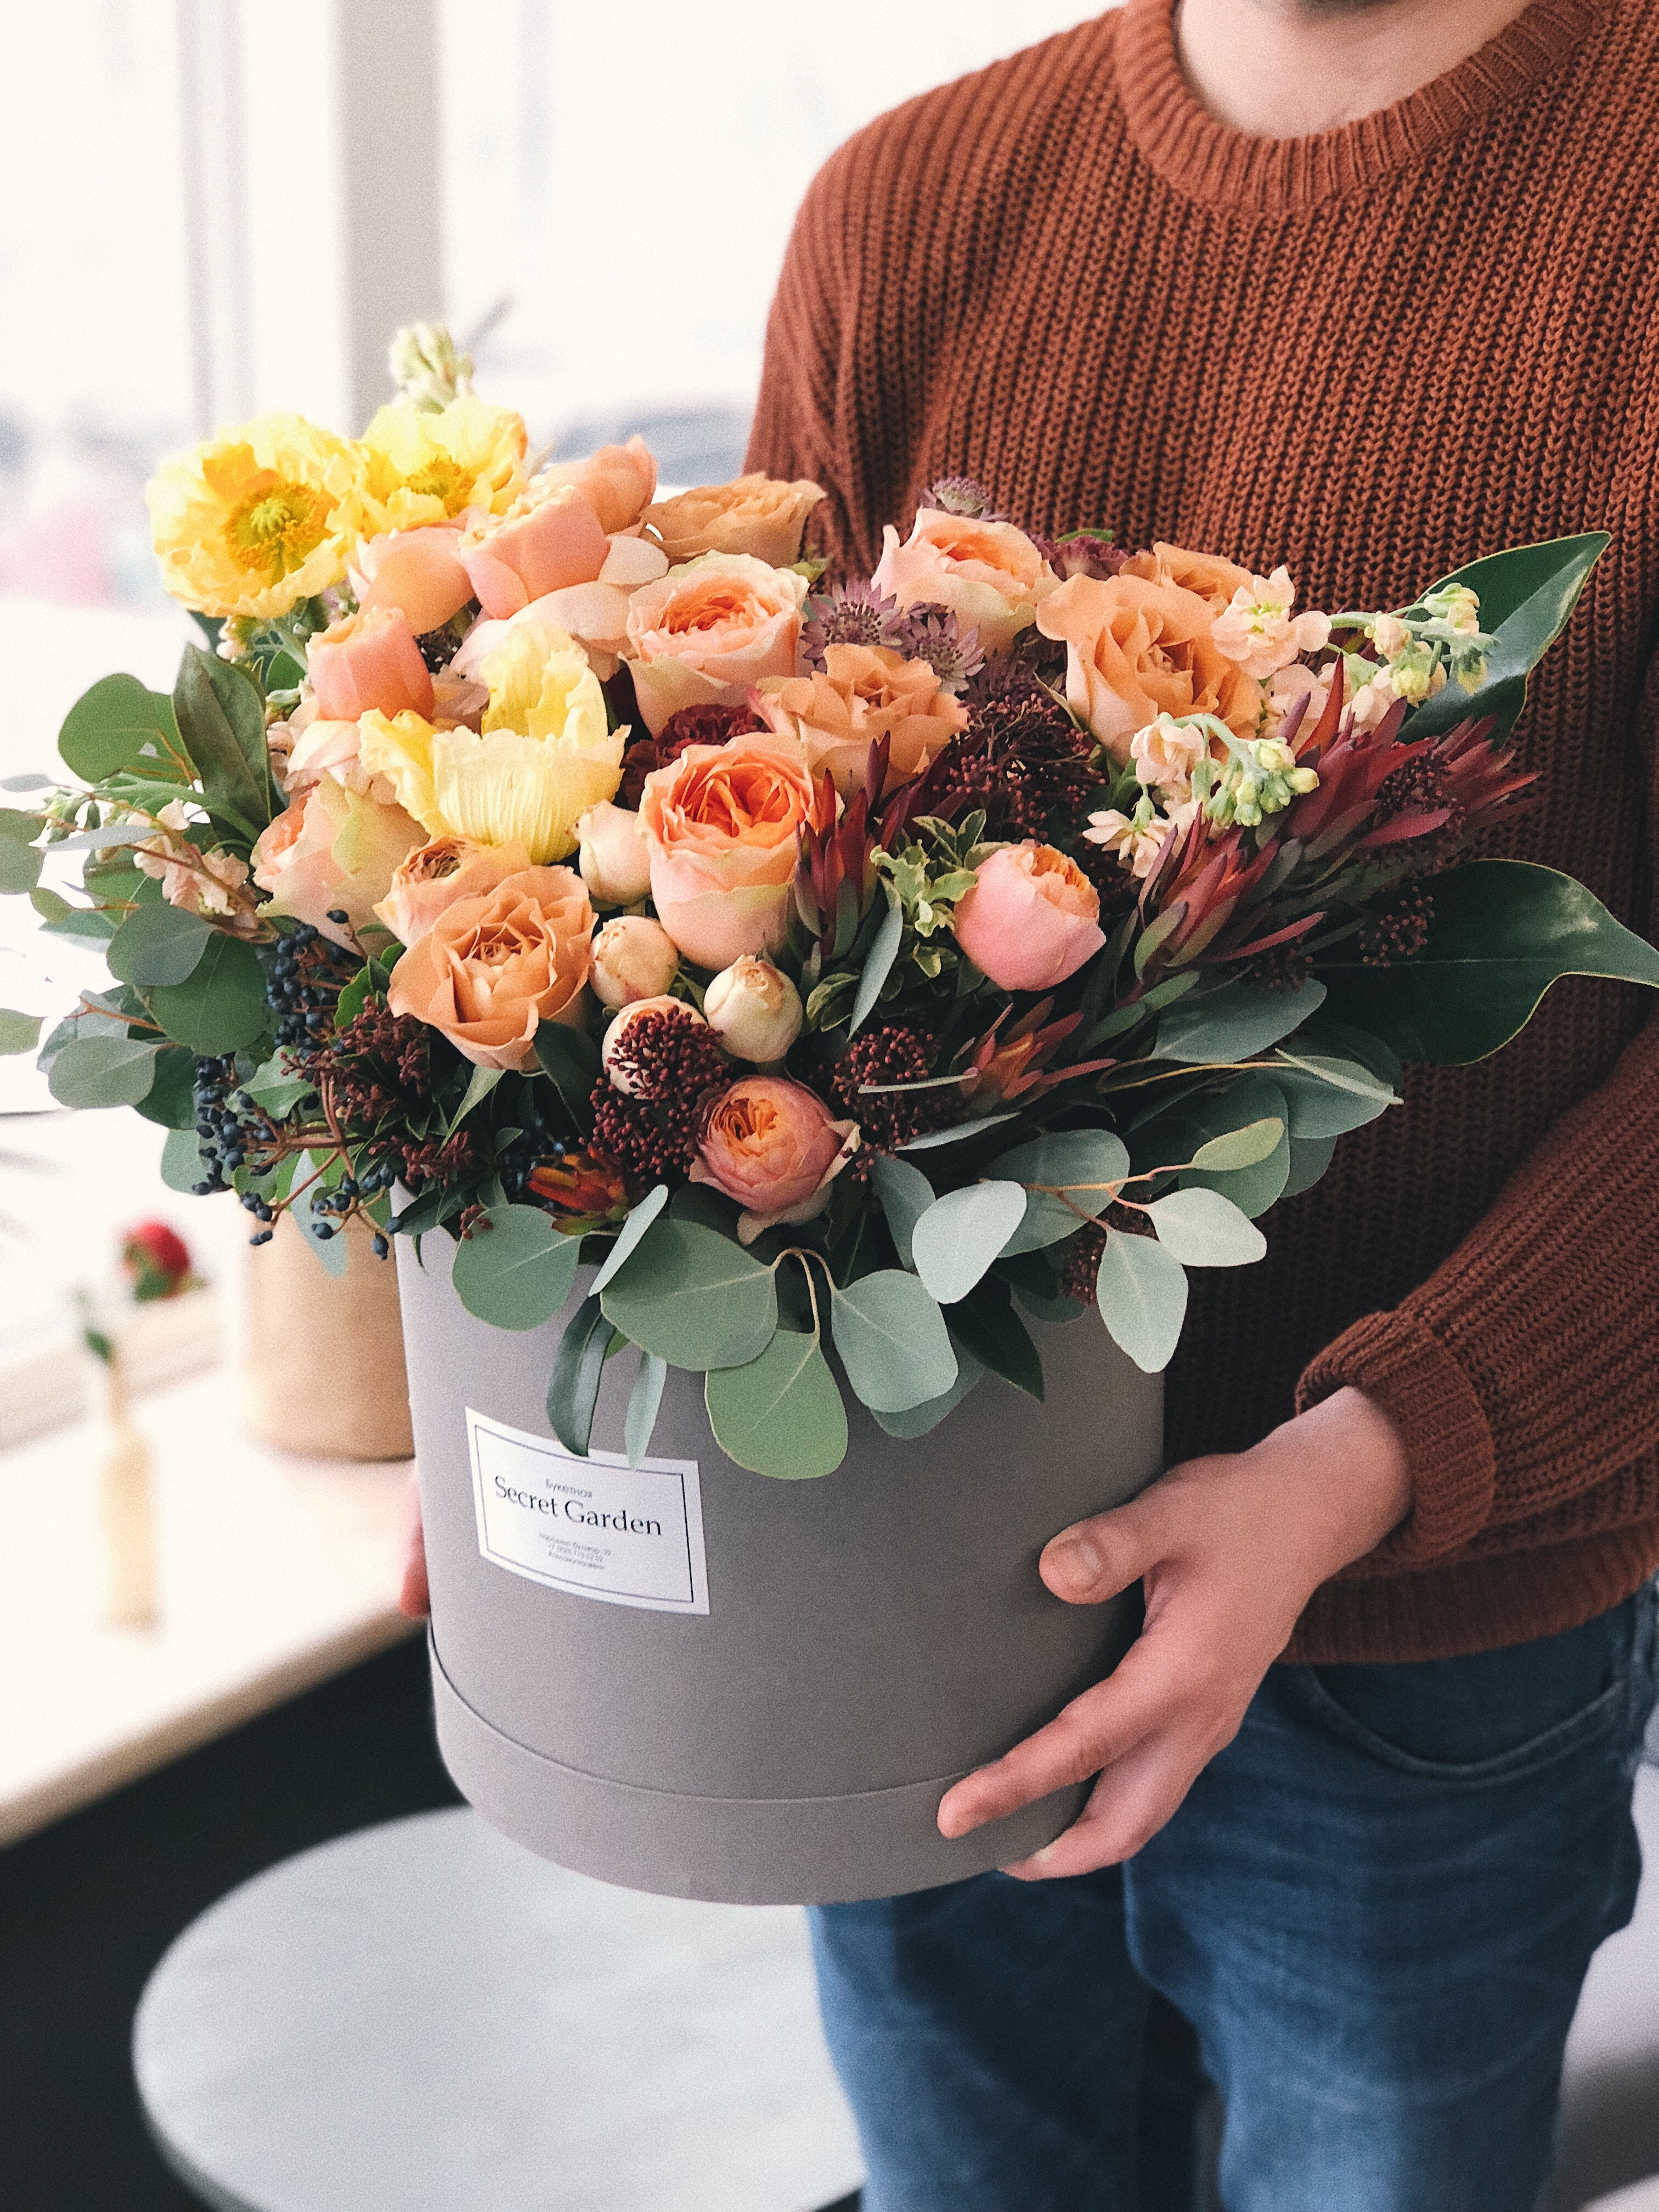 About bellevue crossroads florist bellevue wa florist we are happy to assist you with your out of town or out of the country flower deliveries izmirmasajfo